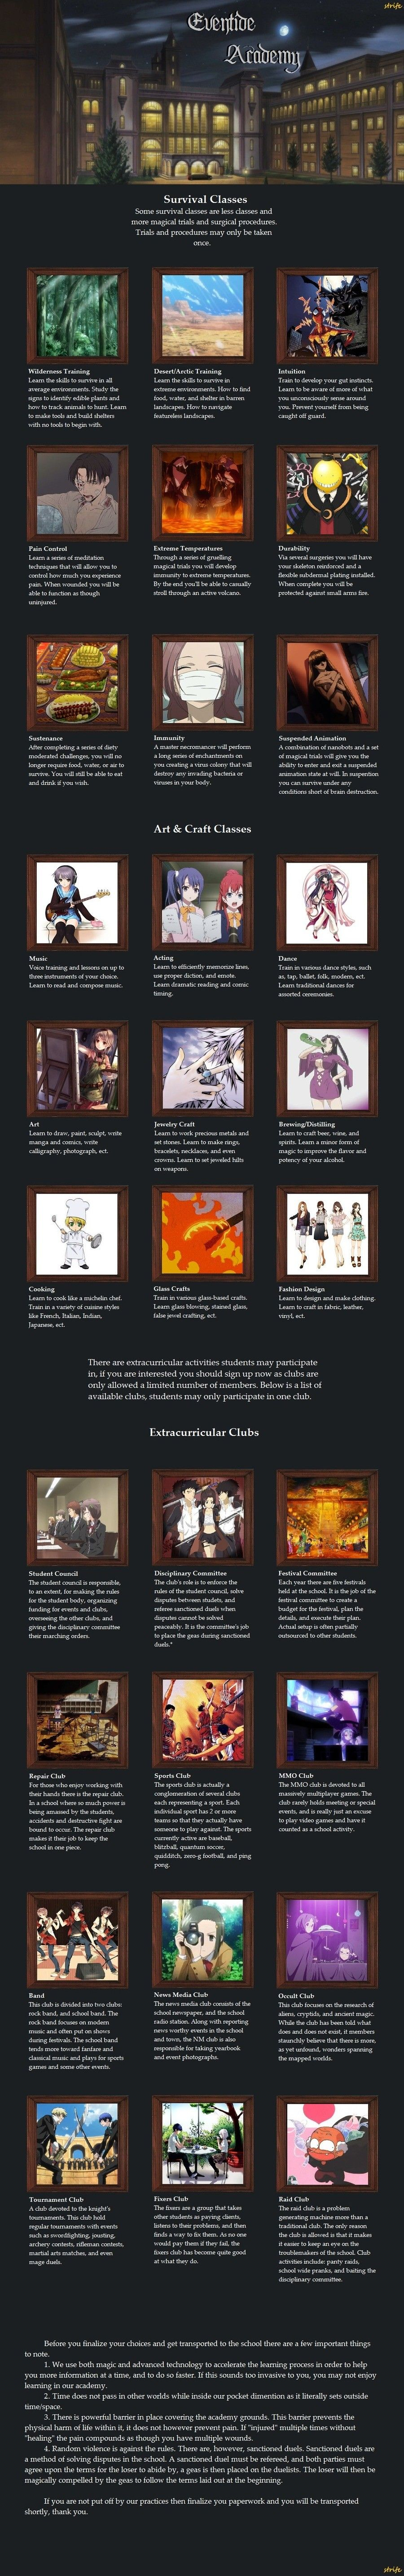 Eventide Academy cyoa | ideas to go with alternate universe